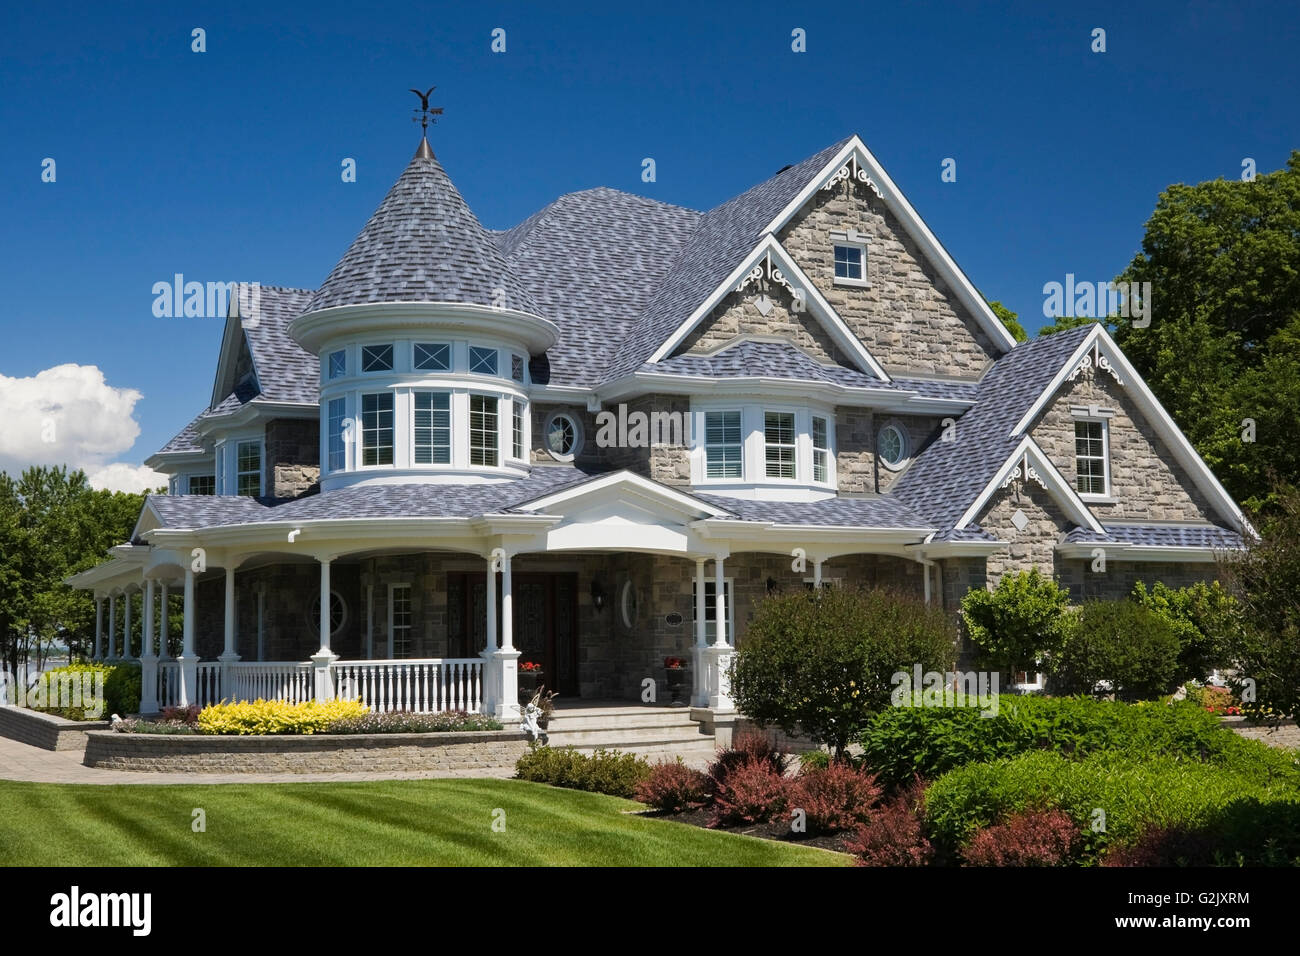 Elegant Grey Stone White Trim Blue Roof Cottage Style Home